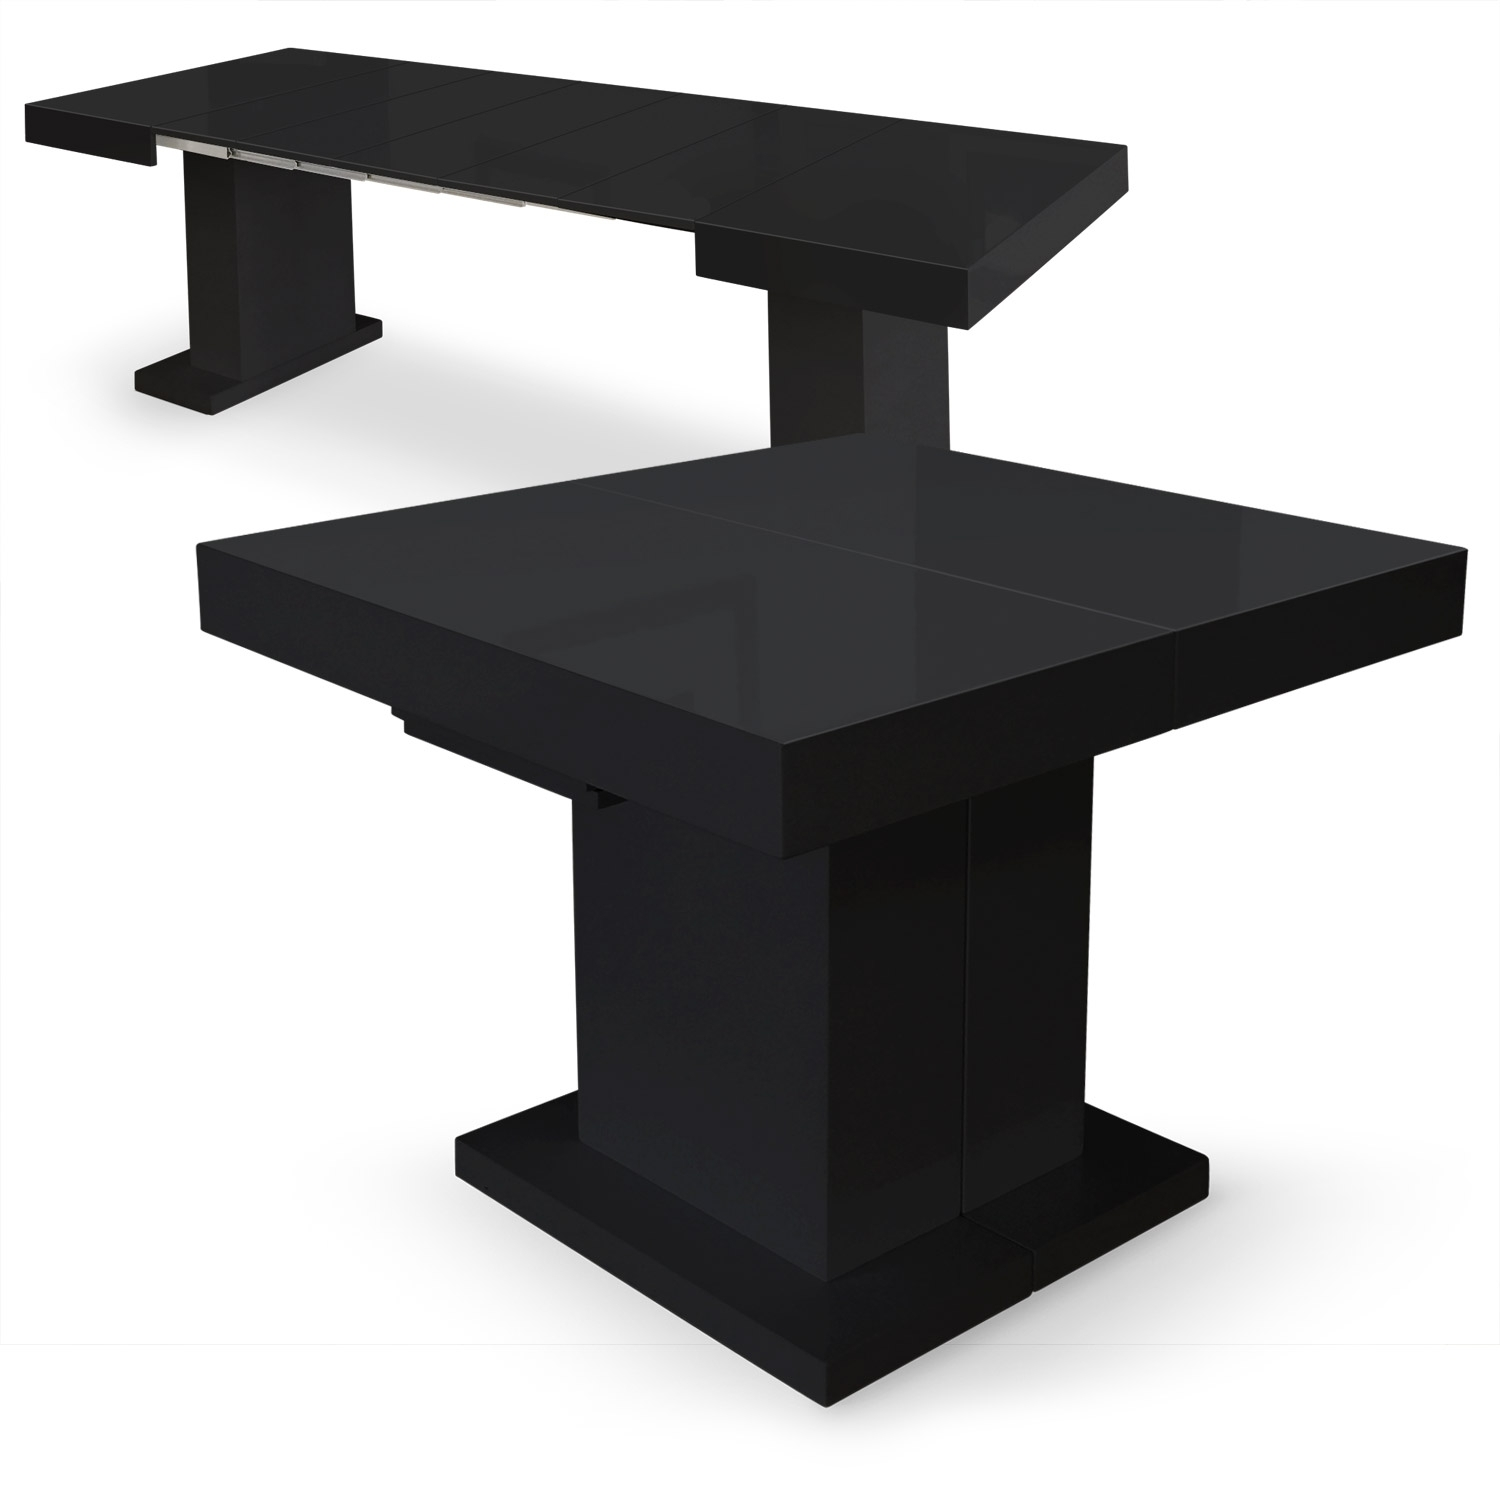 Table Ronde Extensible Noir Table Extensible Noire Maison Design Wiblia